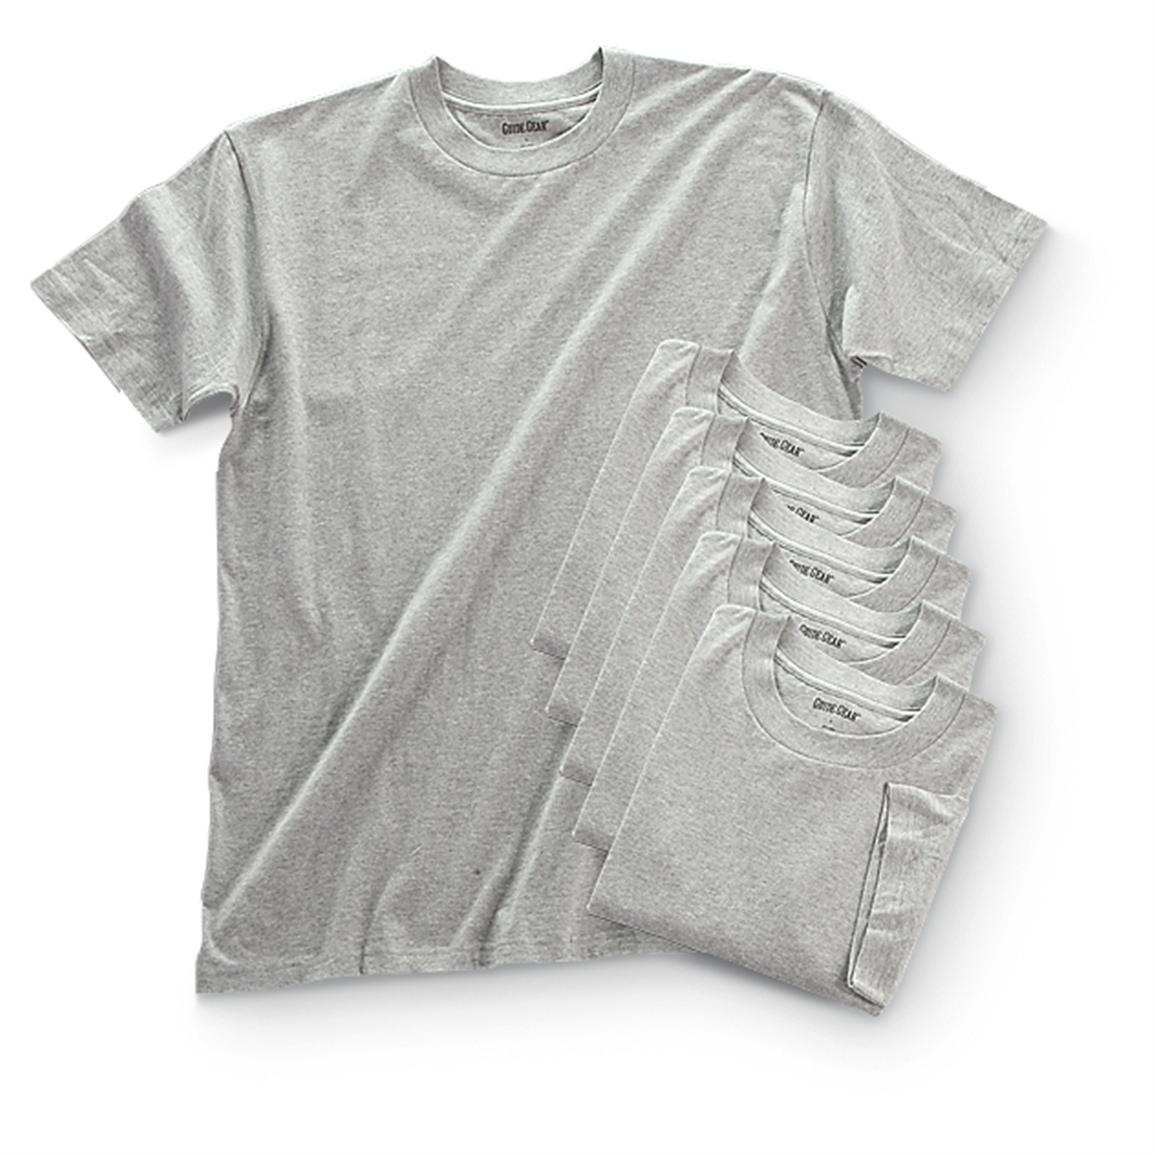 6 Guide Gear® T-shirts, Gray